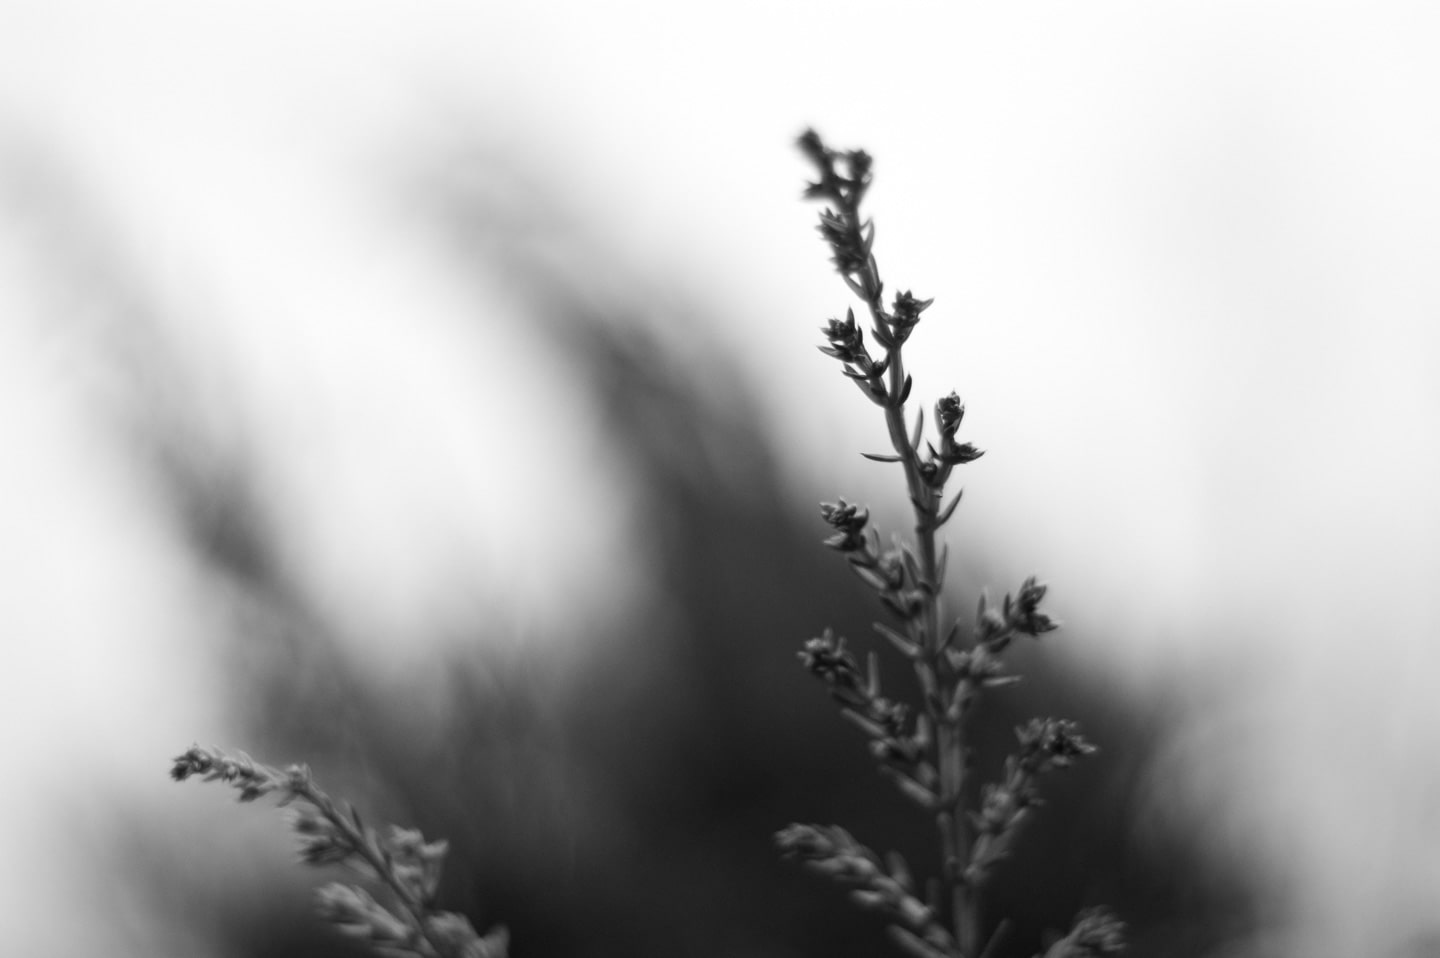 A black and white photograph of two juniper branches close up. In the background, totally out of focus, the rest of the bush echoes the curved shapes of the branches. Behind that is the soft white sky.